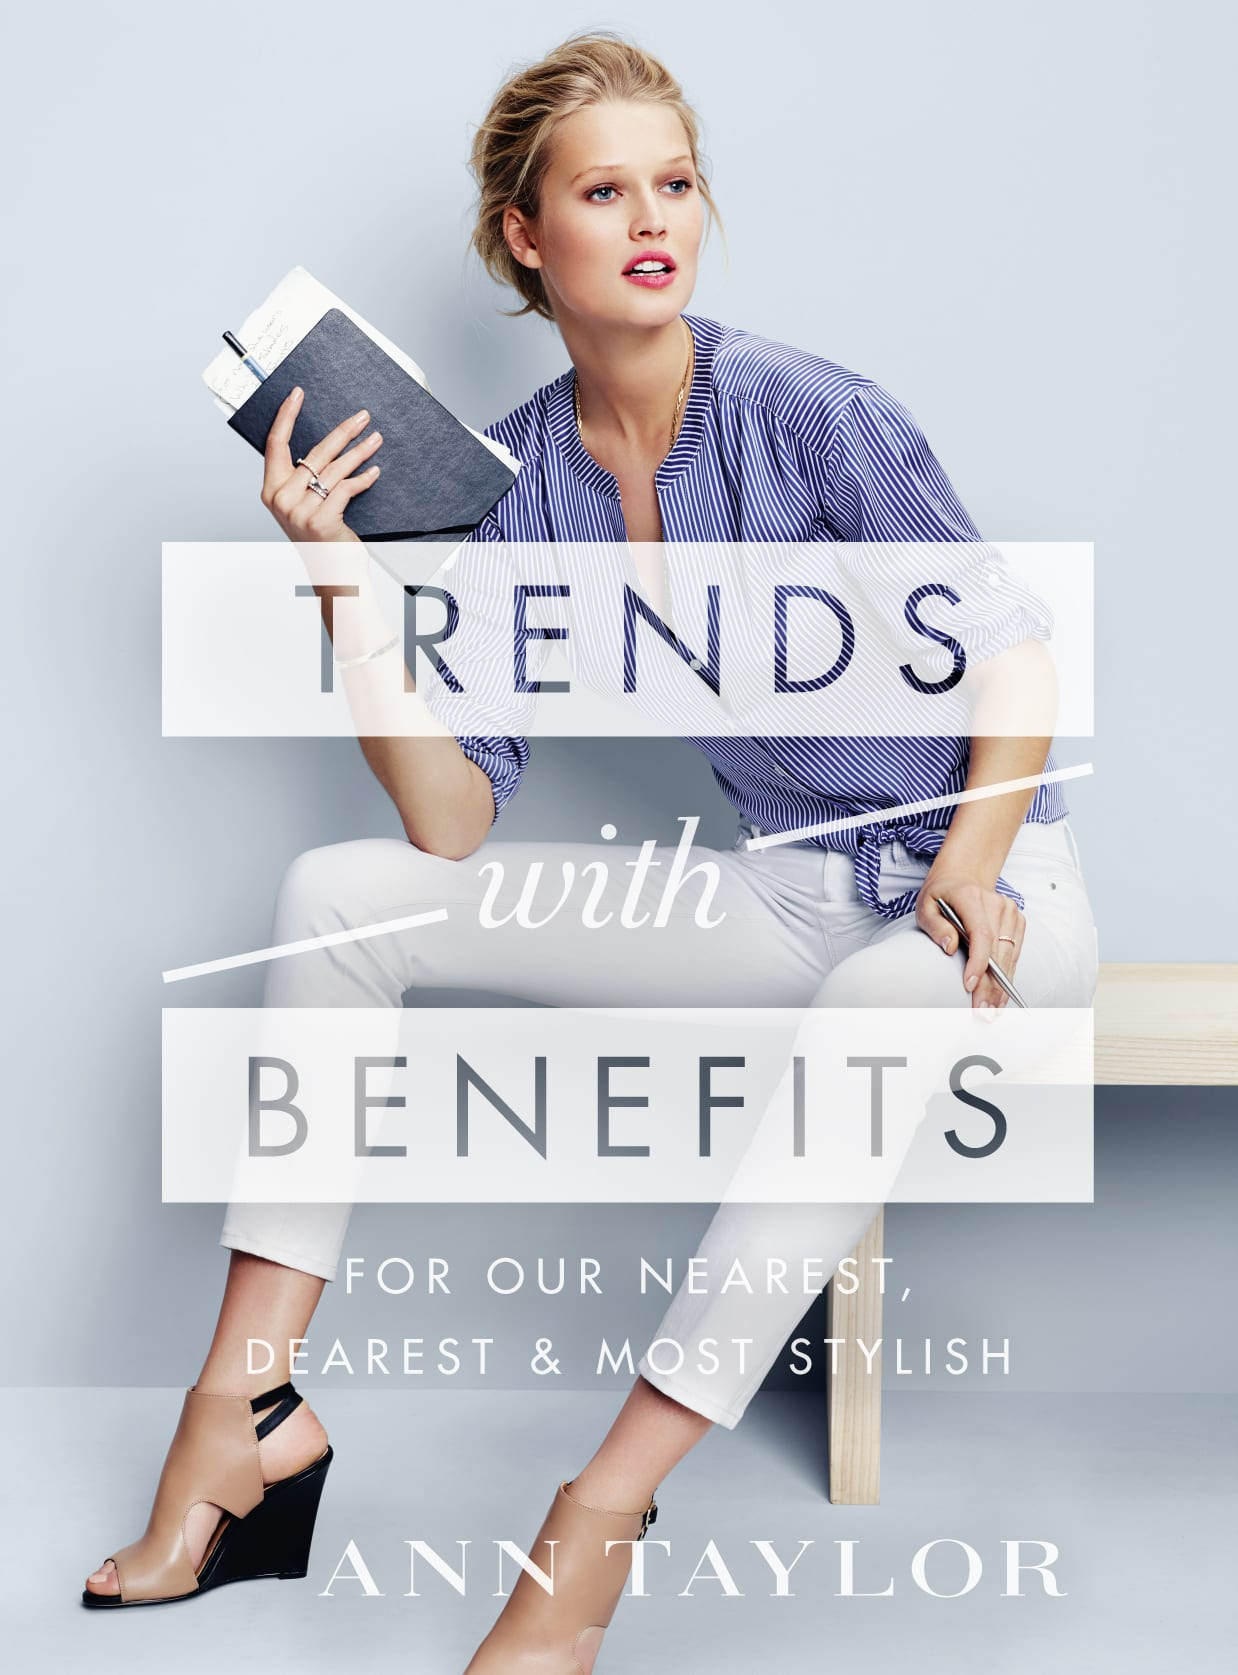 TRENDS W BENEFITS DIRECT MAIL COVER